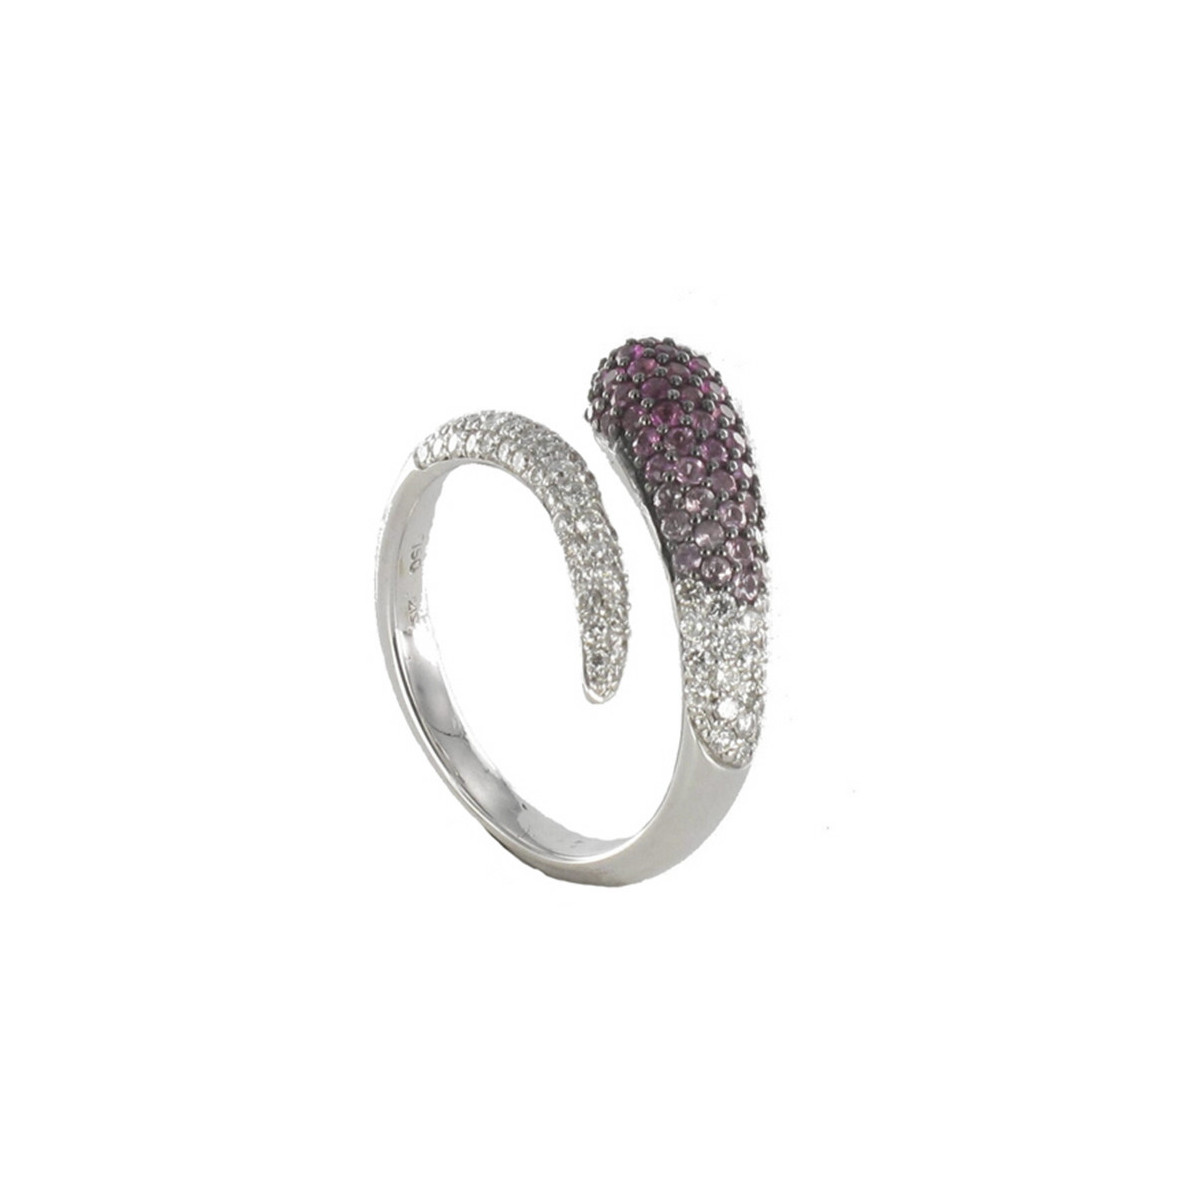 RING WITH PINK SAPPHIRES